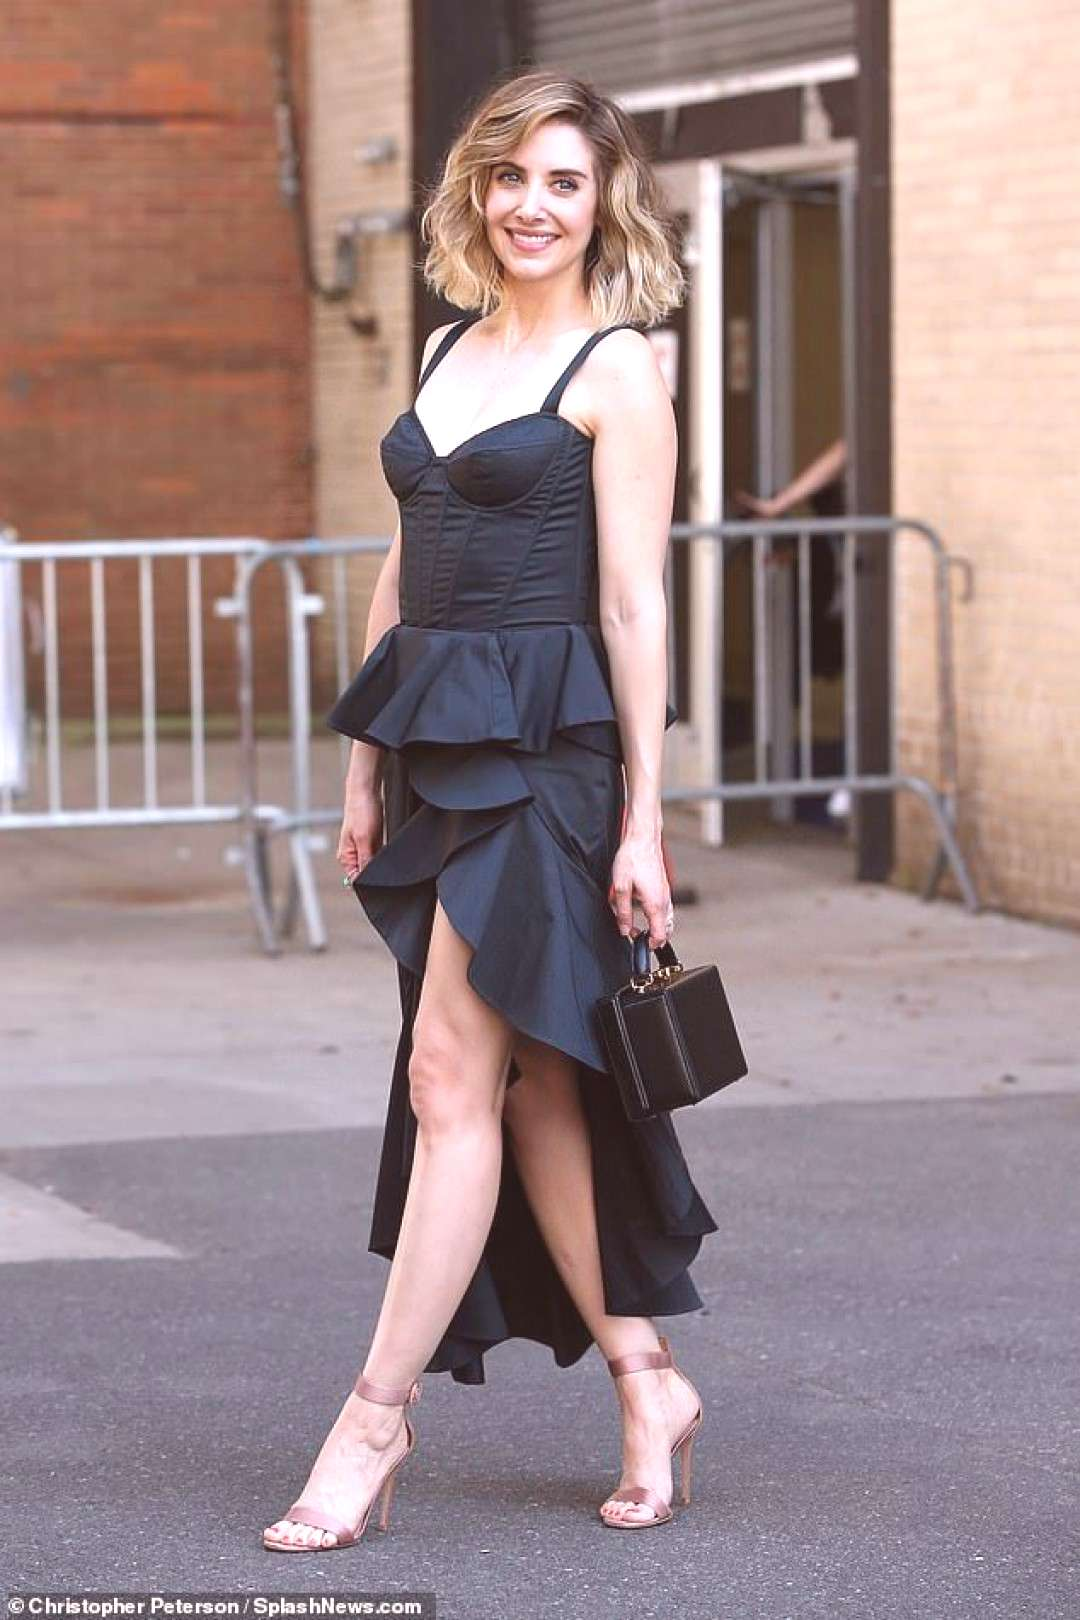 Alison Brie is radiant in black frilled top and matching dress as she attends event in New York | D